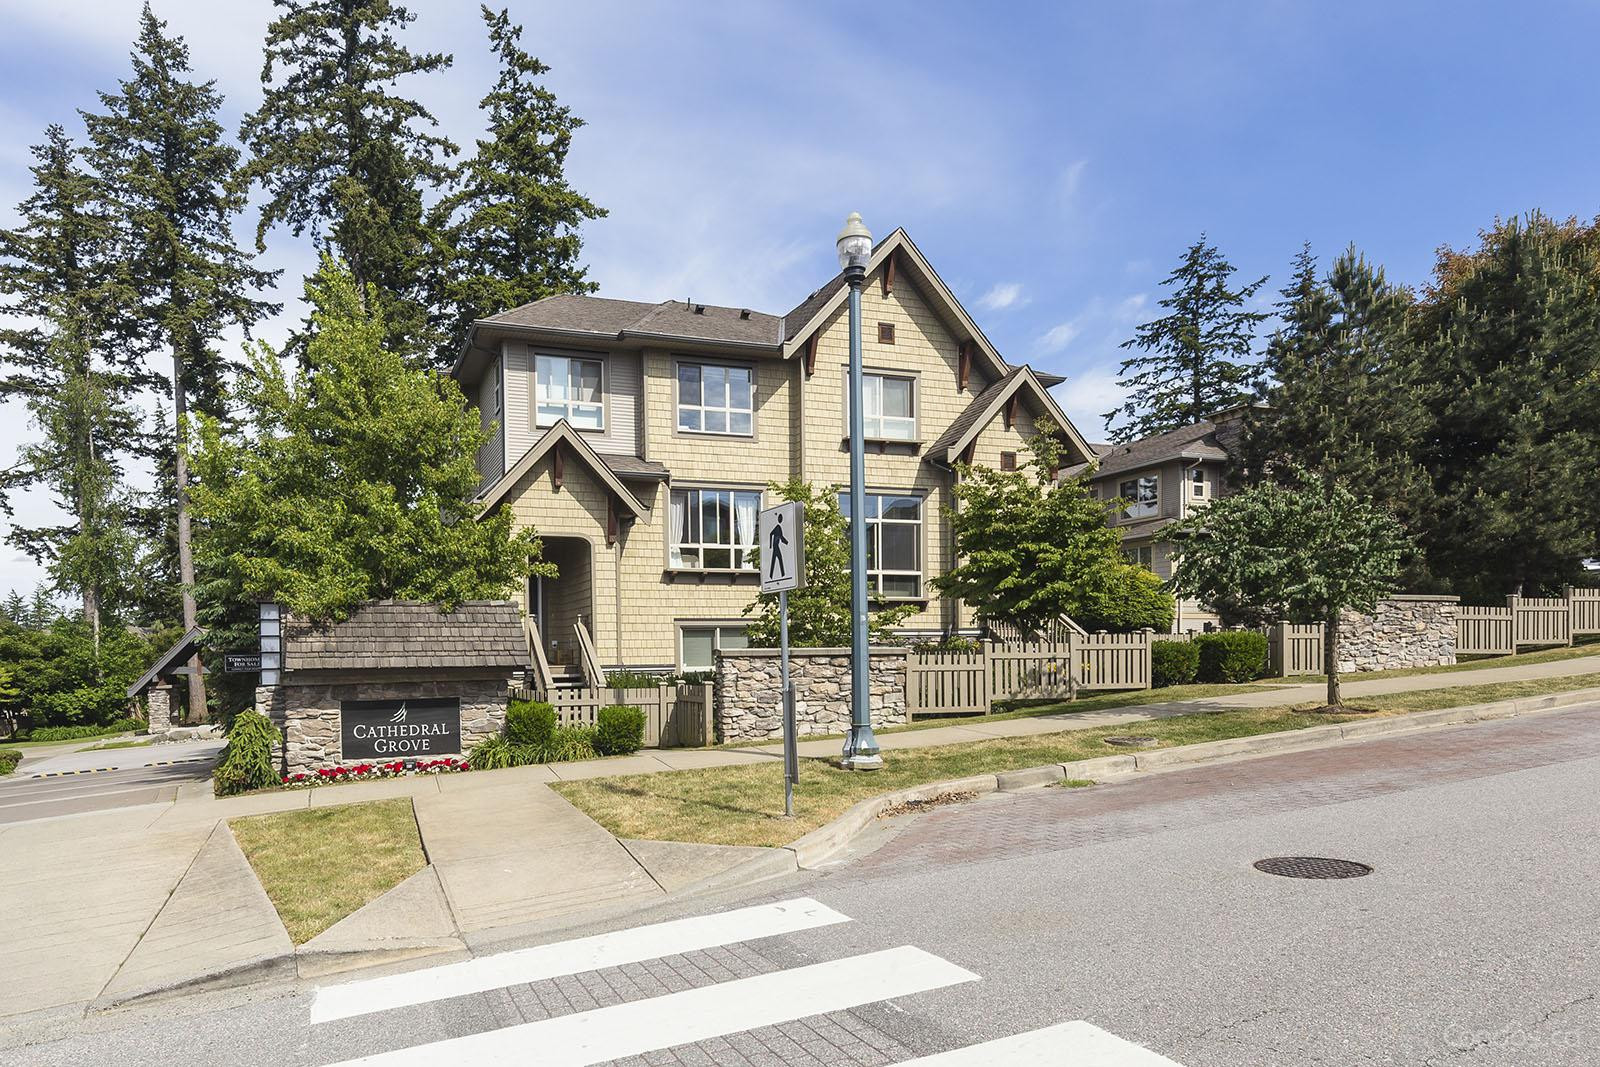 Cathedral Grove at 2738 158 St, Surrey 0